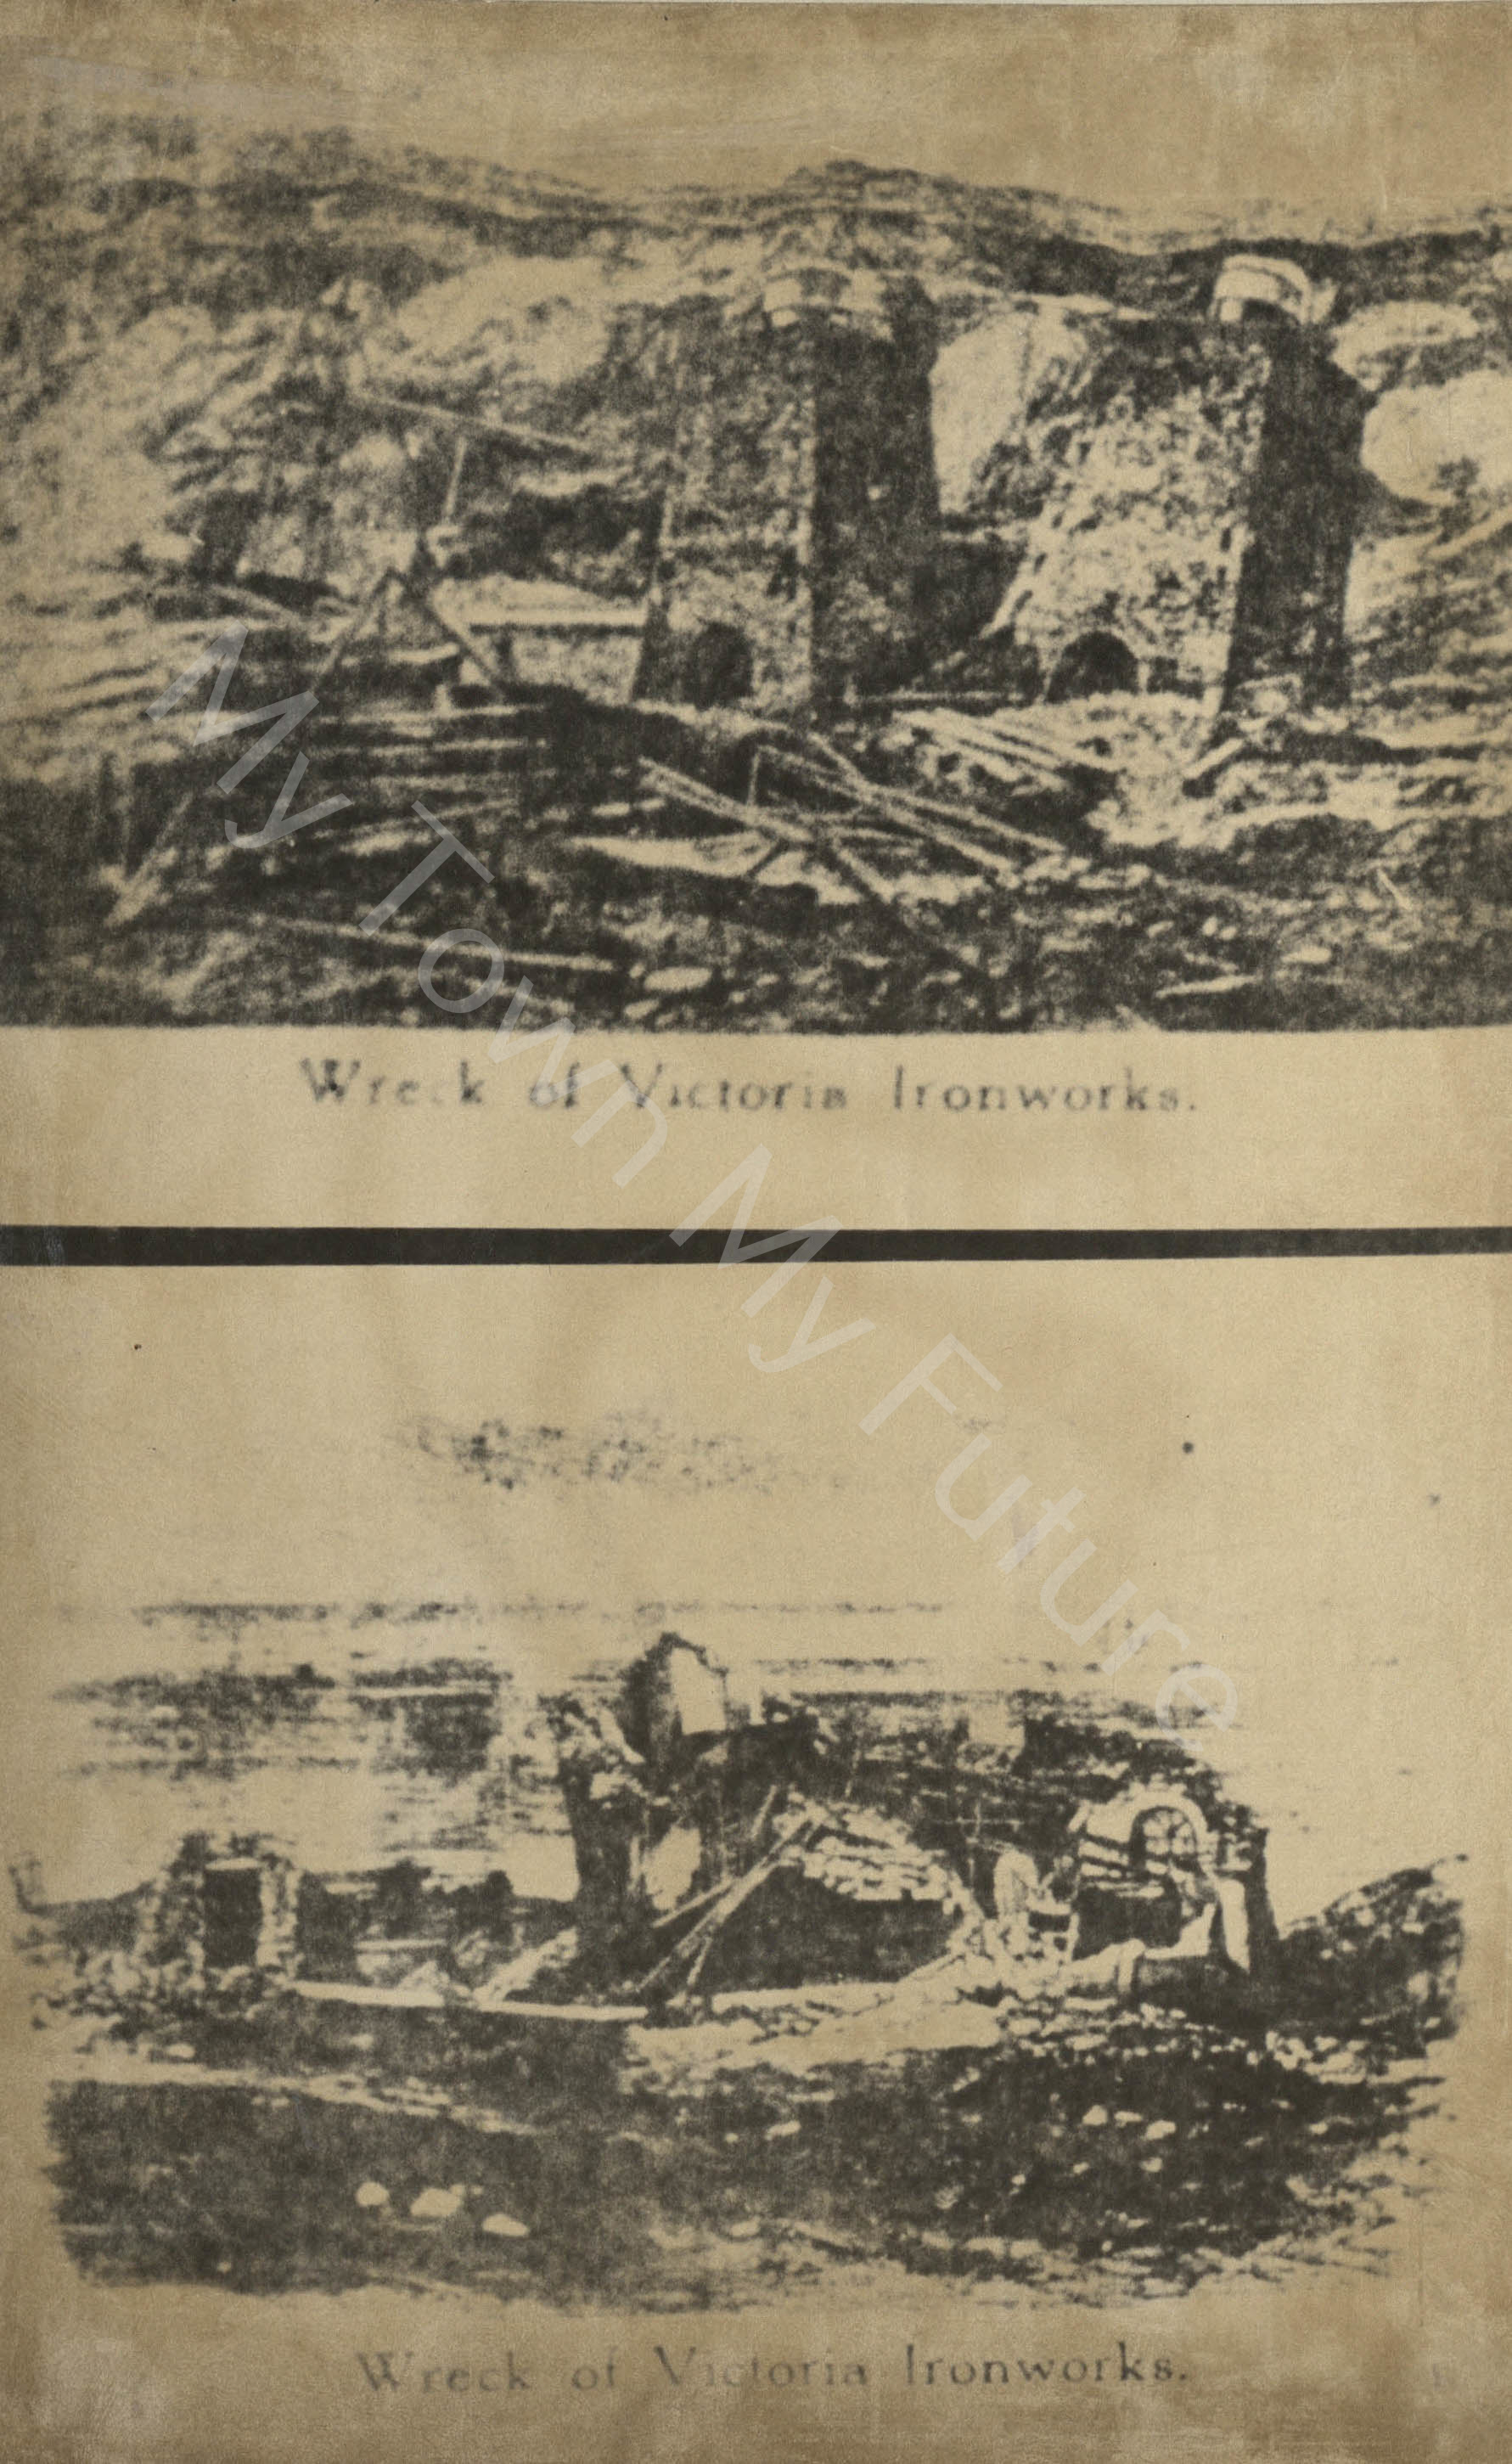 Wreck of Victoria Ironworks